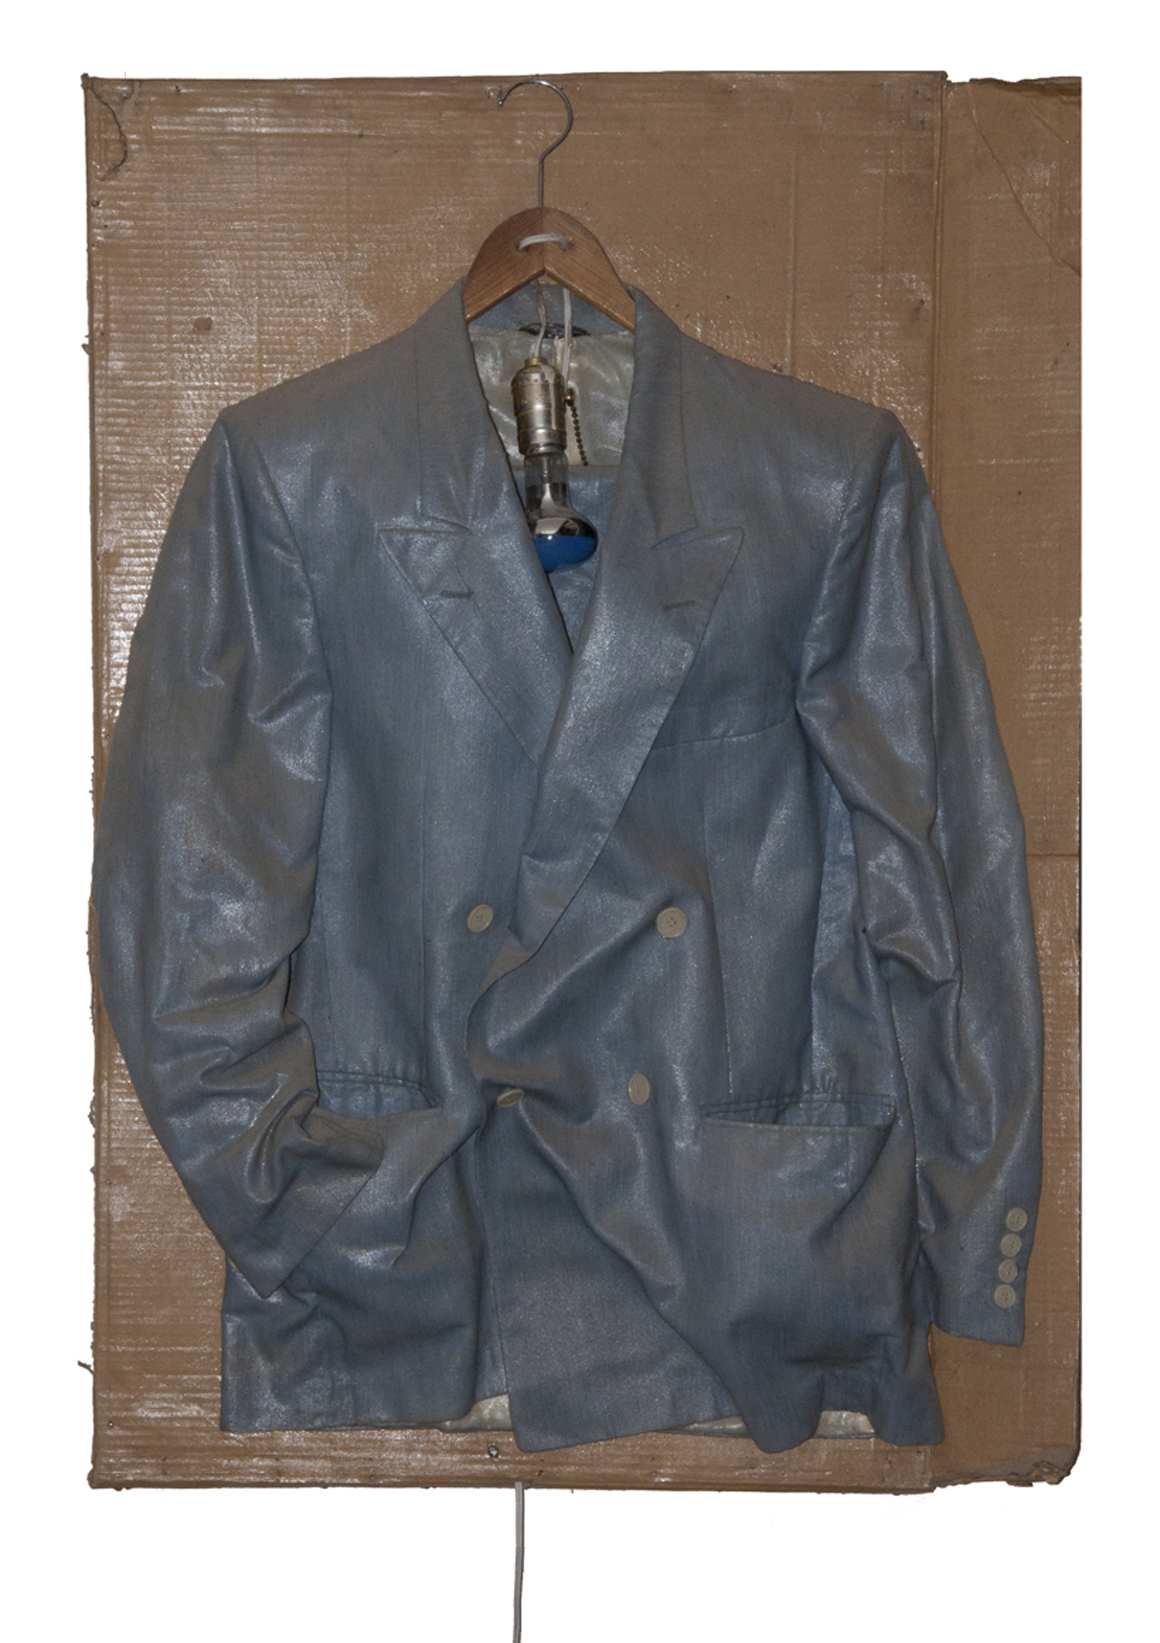 "<p><span class=""name"">Fritz Fox</span><br><em>Suit Jacket Night Light</em><span class='media'>mixed media</span>199<br></p>"